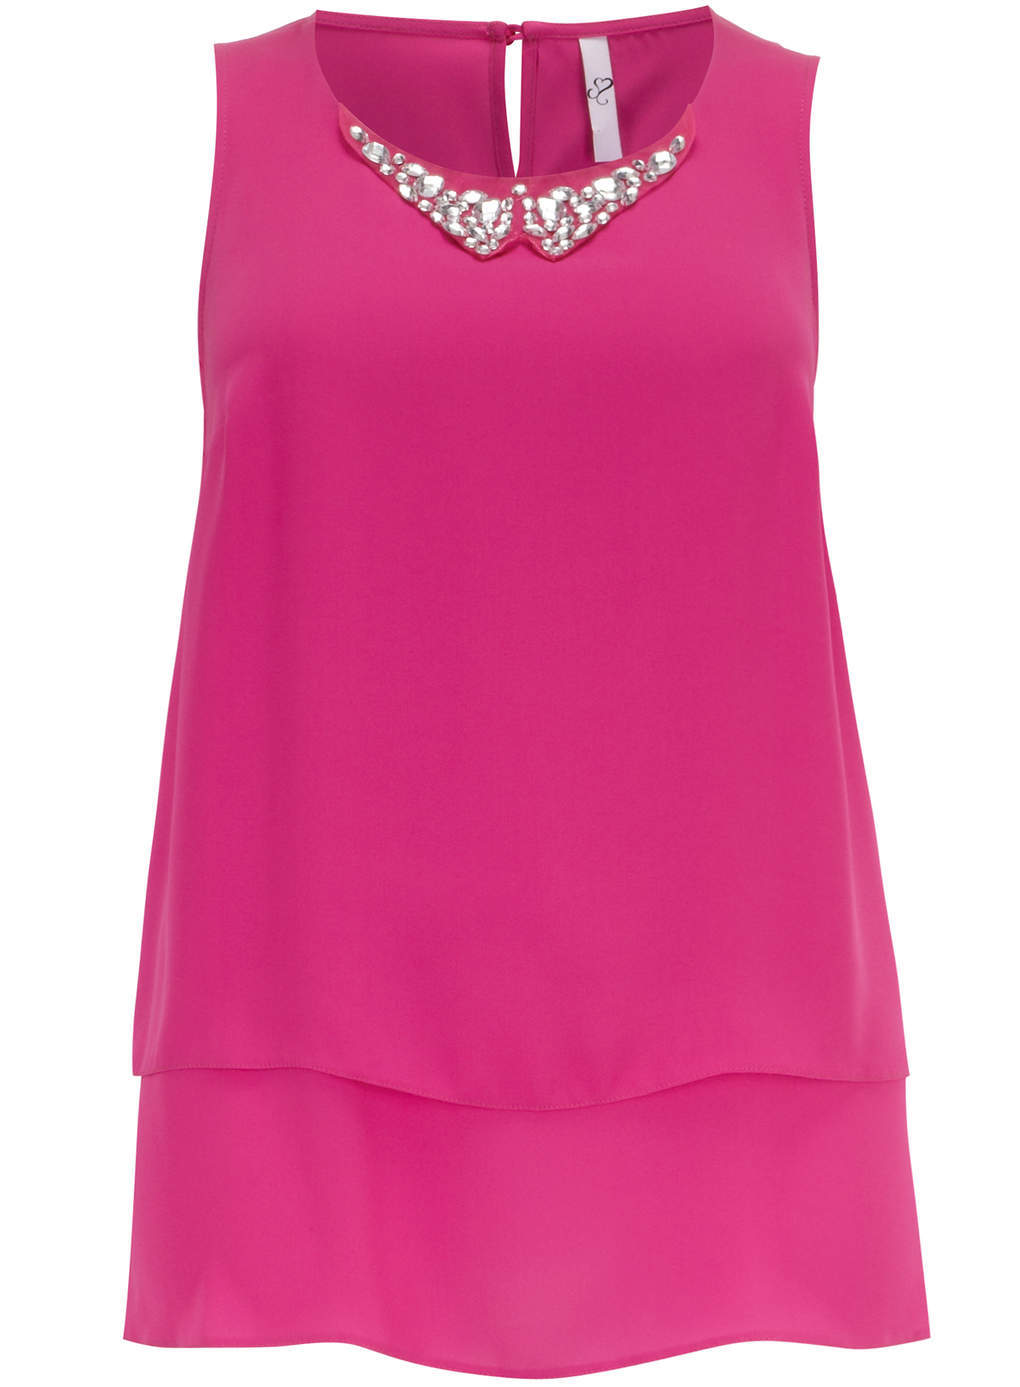 Pink Jewel Peter Pan Shell Top - neckline: round neck; pattern: plain; sleeve style: sleeveless; length: below the bottom; predominant colour: hot pink; occasions: casual, evening; style: top; fibres: polyester/polyamide - 100%; fit: loose; sleeve length: sleeveless; texture group: sheer fabrics/chiffon/organza etc.; pattern type: fabric; embellishment: jewels/stone; season: s/s 2014; wardrobe: highlight; embellishment location: neck